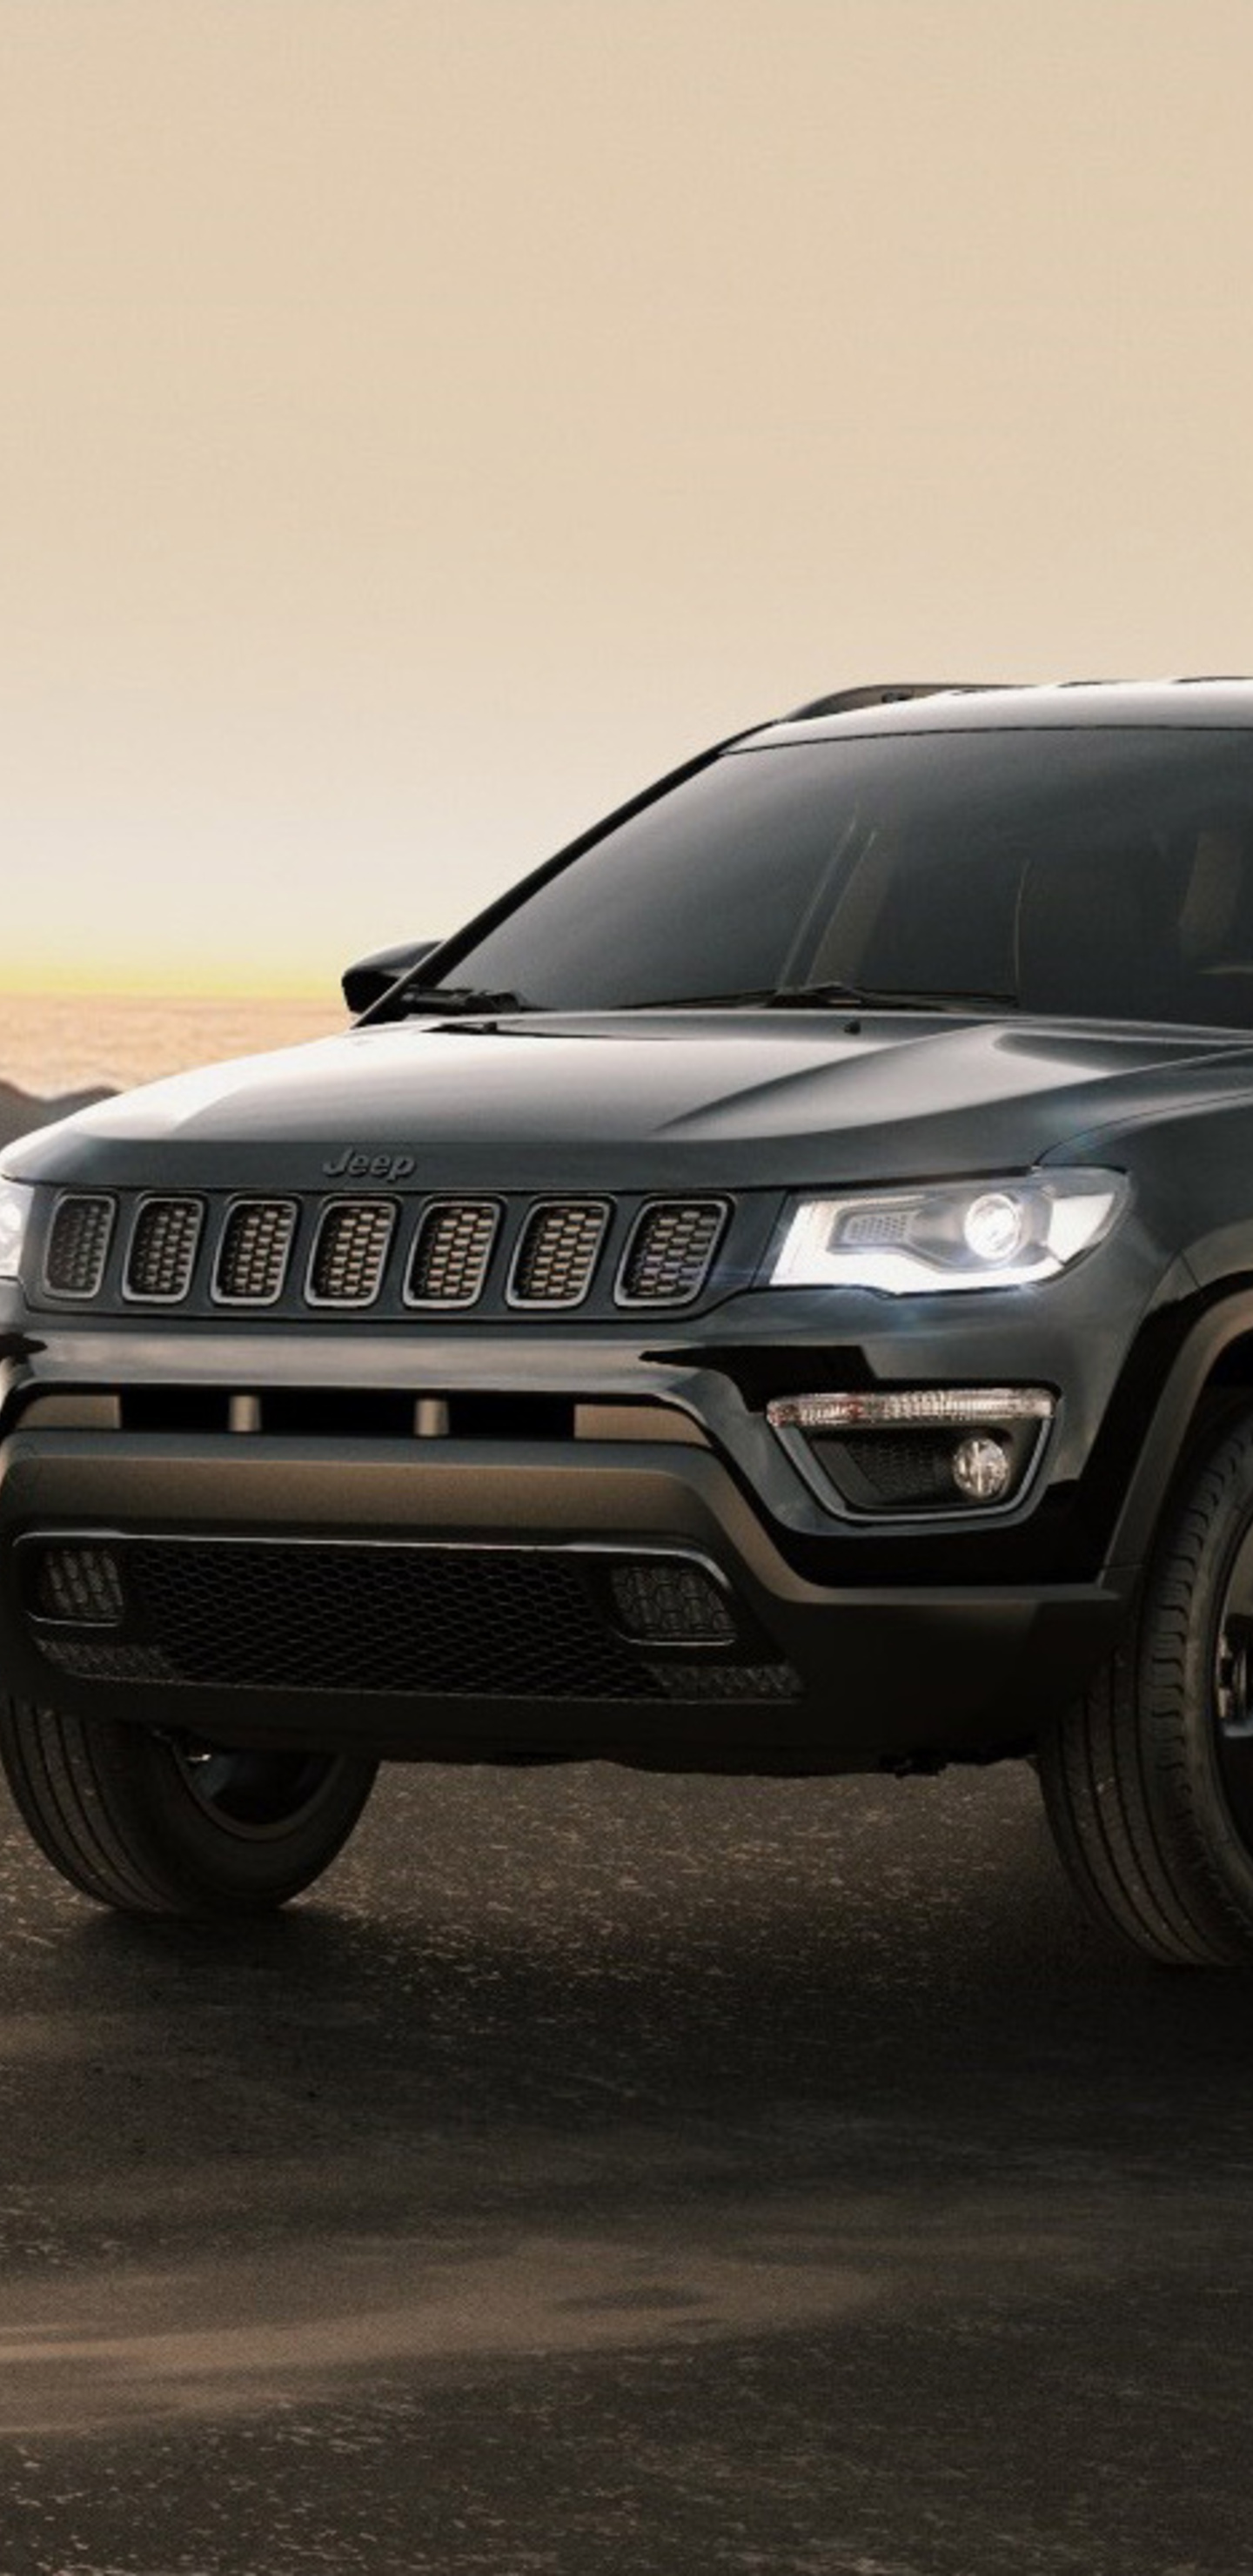 1440x2960 Jeep Compass Night Eagle 2017 Samsung Galaxy Note 9 8 S9 S8 S8 Qhd Hd 4k Wallpapers Images Backgrounds Photos And Pictures